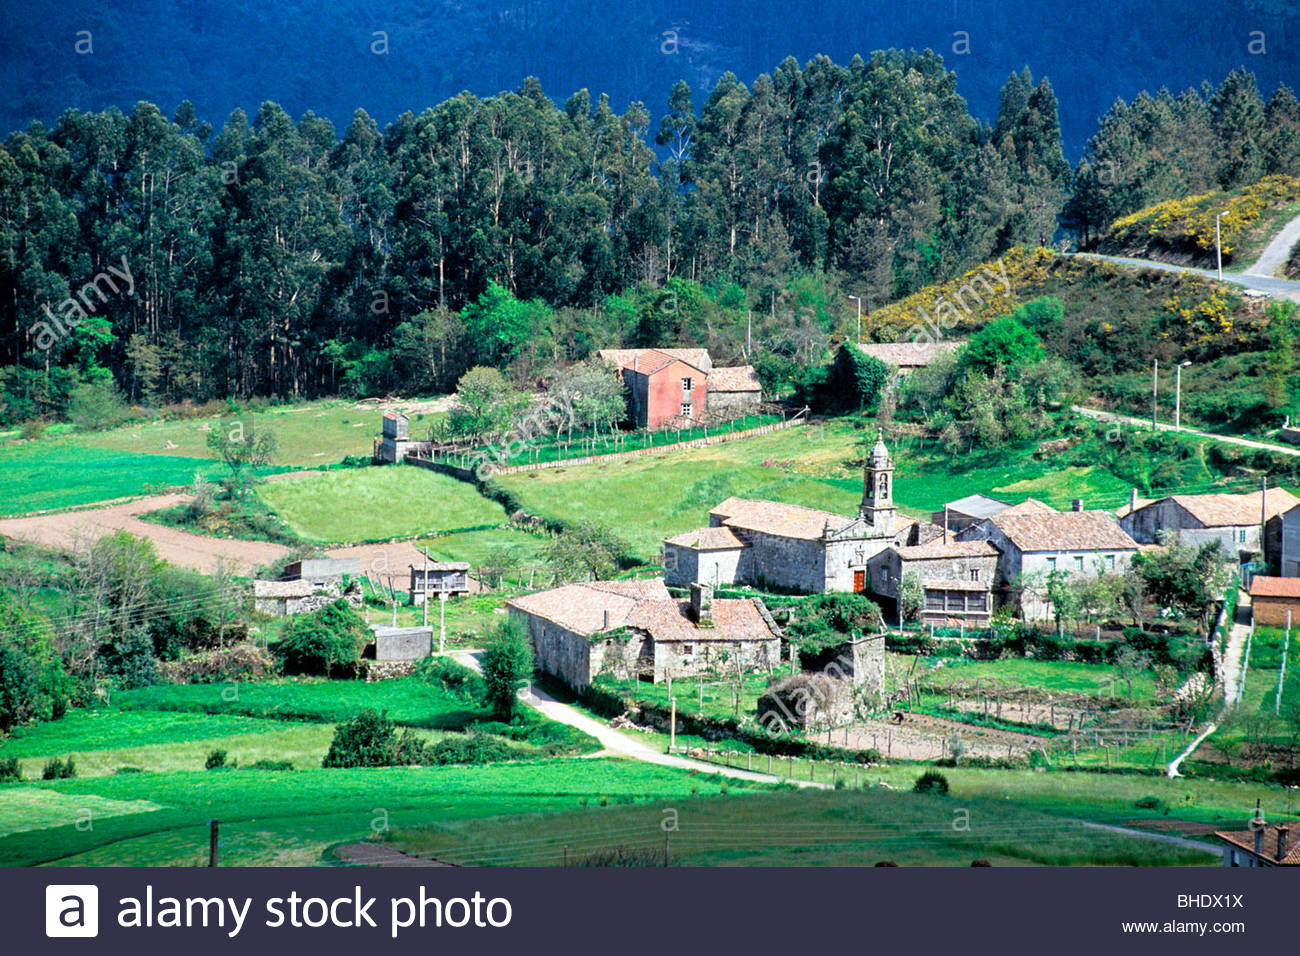 Hamlet of Chimpara in the mountains. Galicia, spain - Stock Image